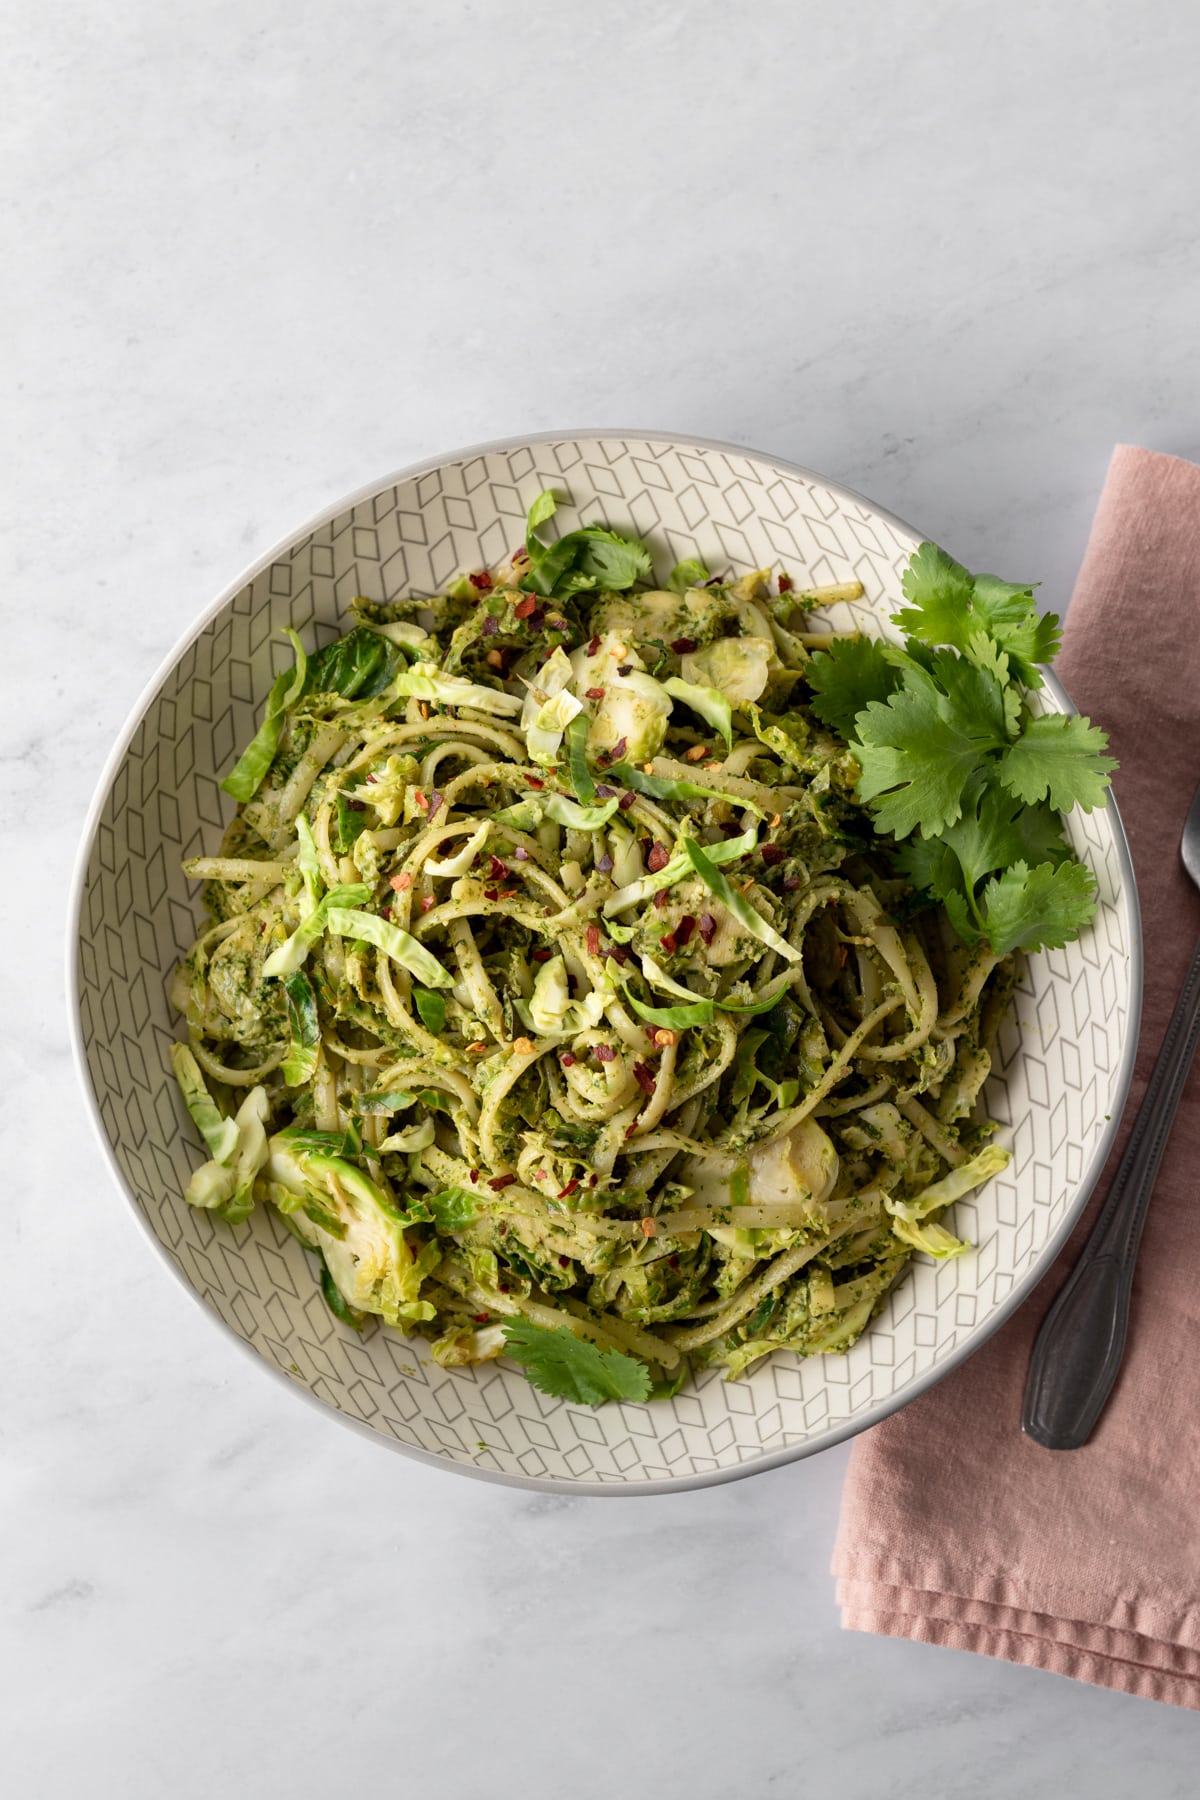 serving of pasta and shredded brussels sprouts coated with zhoug, aka spicy cilantro pesto